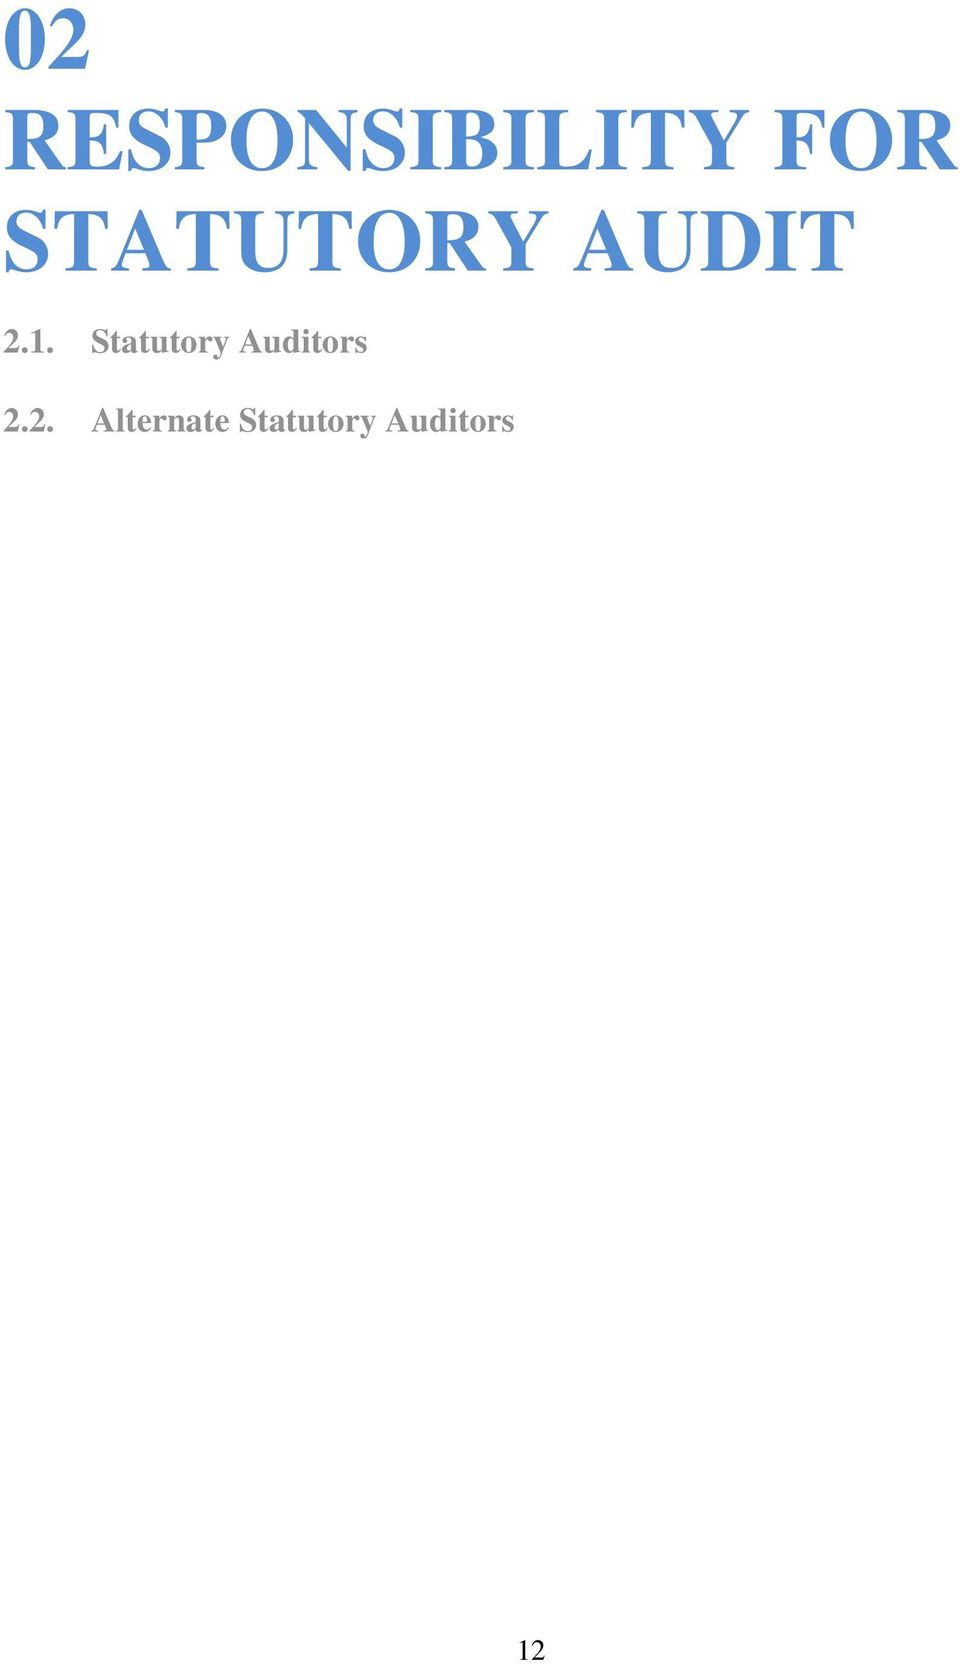 Statutory Auditors 2.